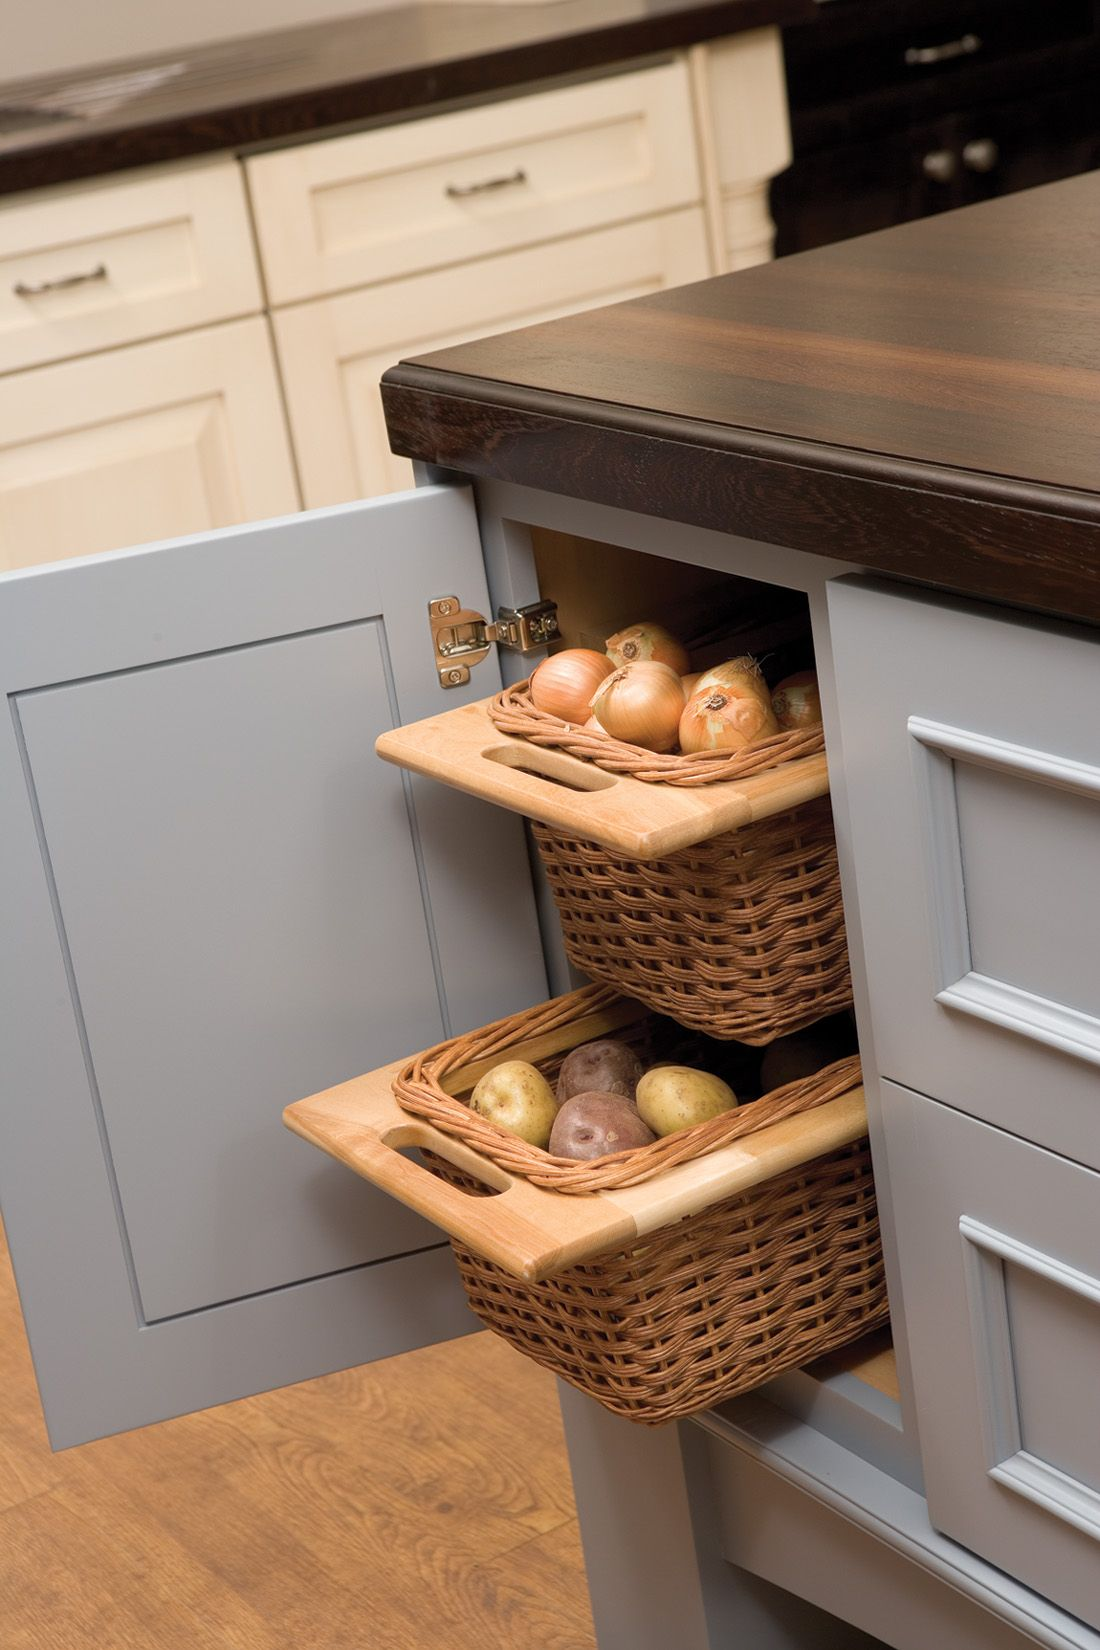 Open Weave Baskets Offer Popular Pantry Storage For Onions And Potatoes That Need The Air Circula Kitchen Storage Solutions No Pantry Solutions Kitchen Storage